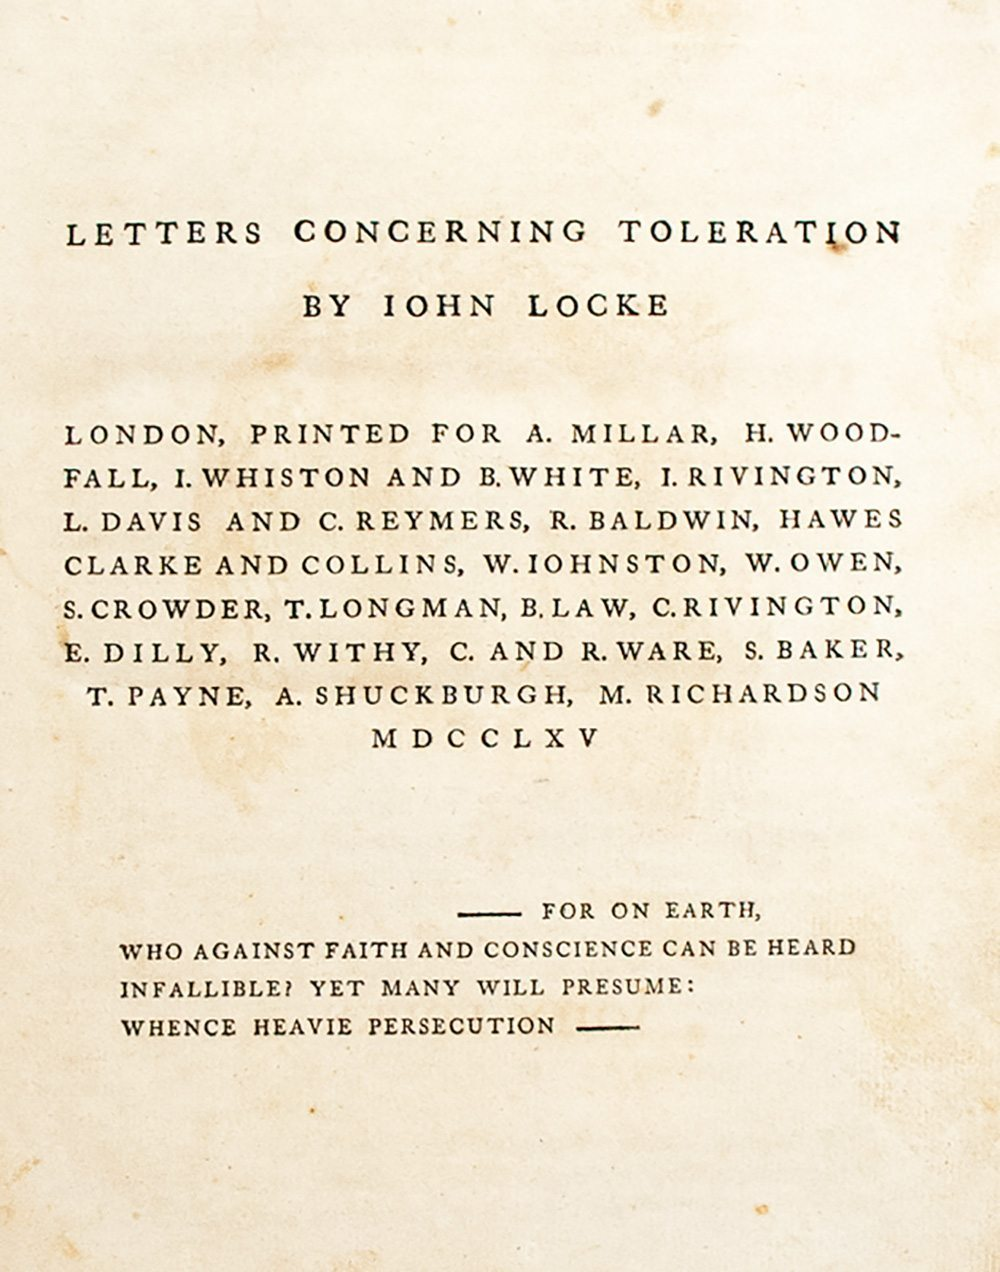 john locke s letters concerning toleration first edition 21061 middot 21061 7 middot 21061 4 middot 21061 5